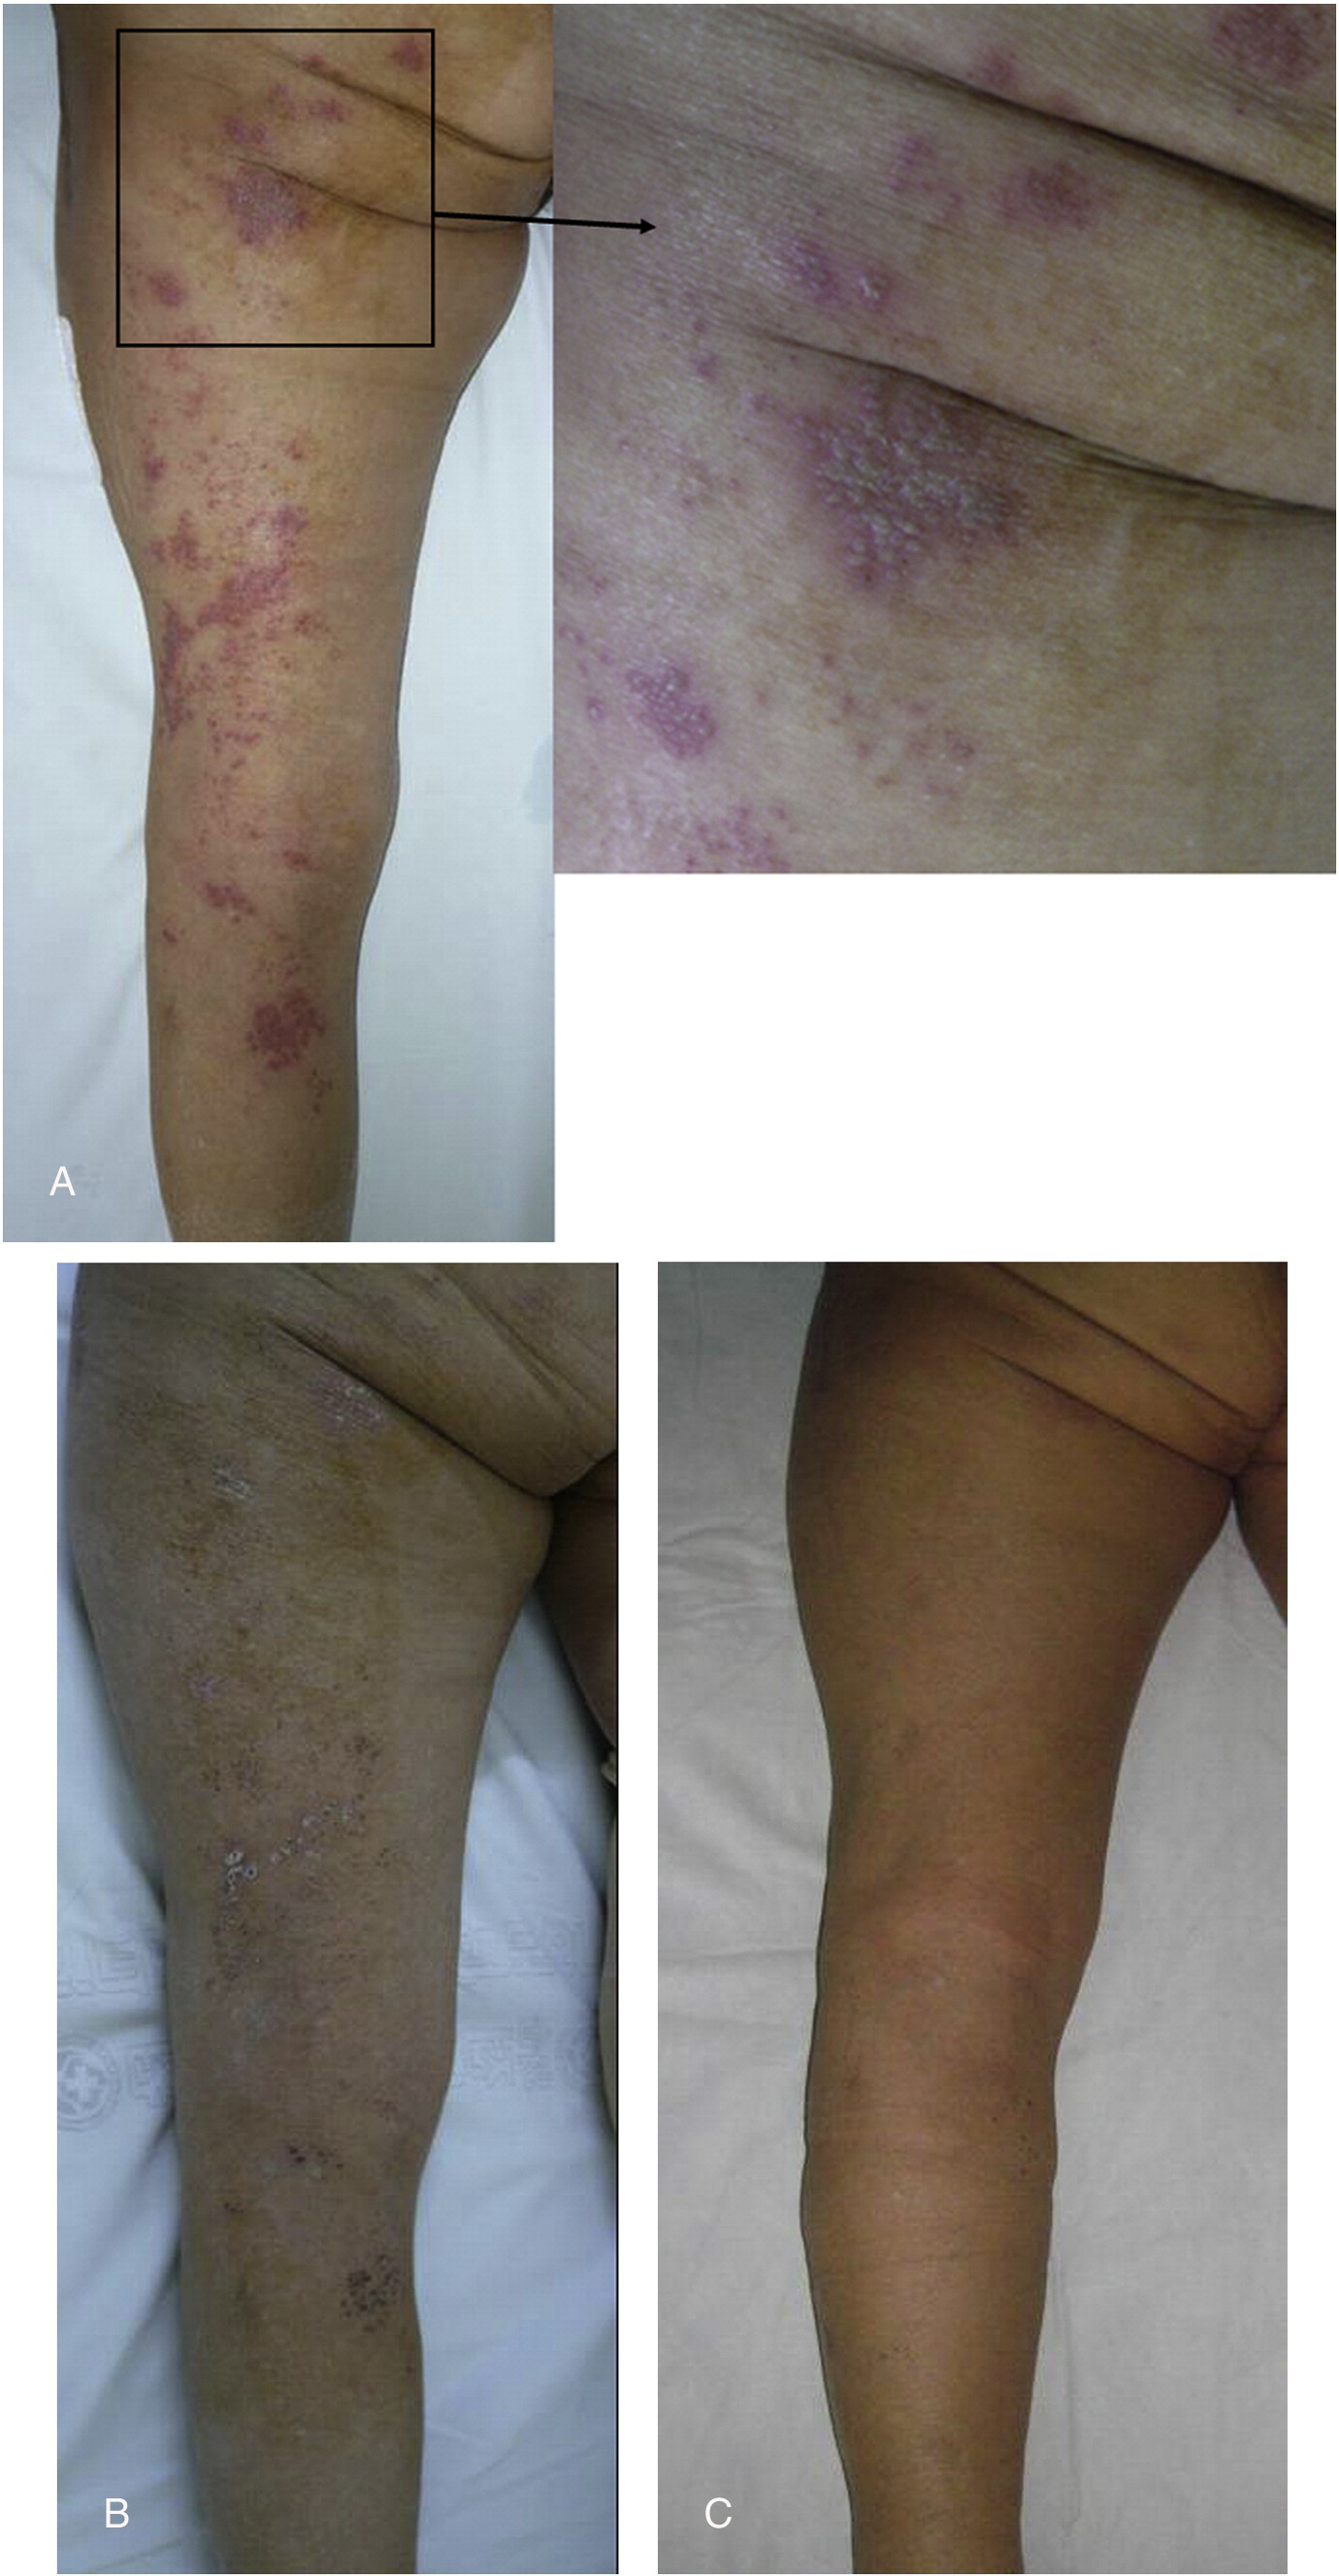 Acute Postoperative Herpes Zoster With A Sciatic Nerve